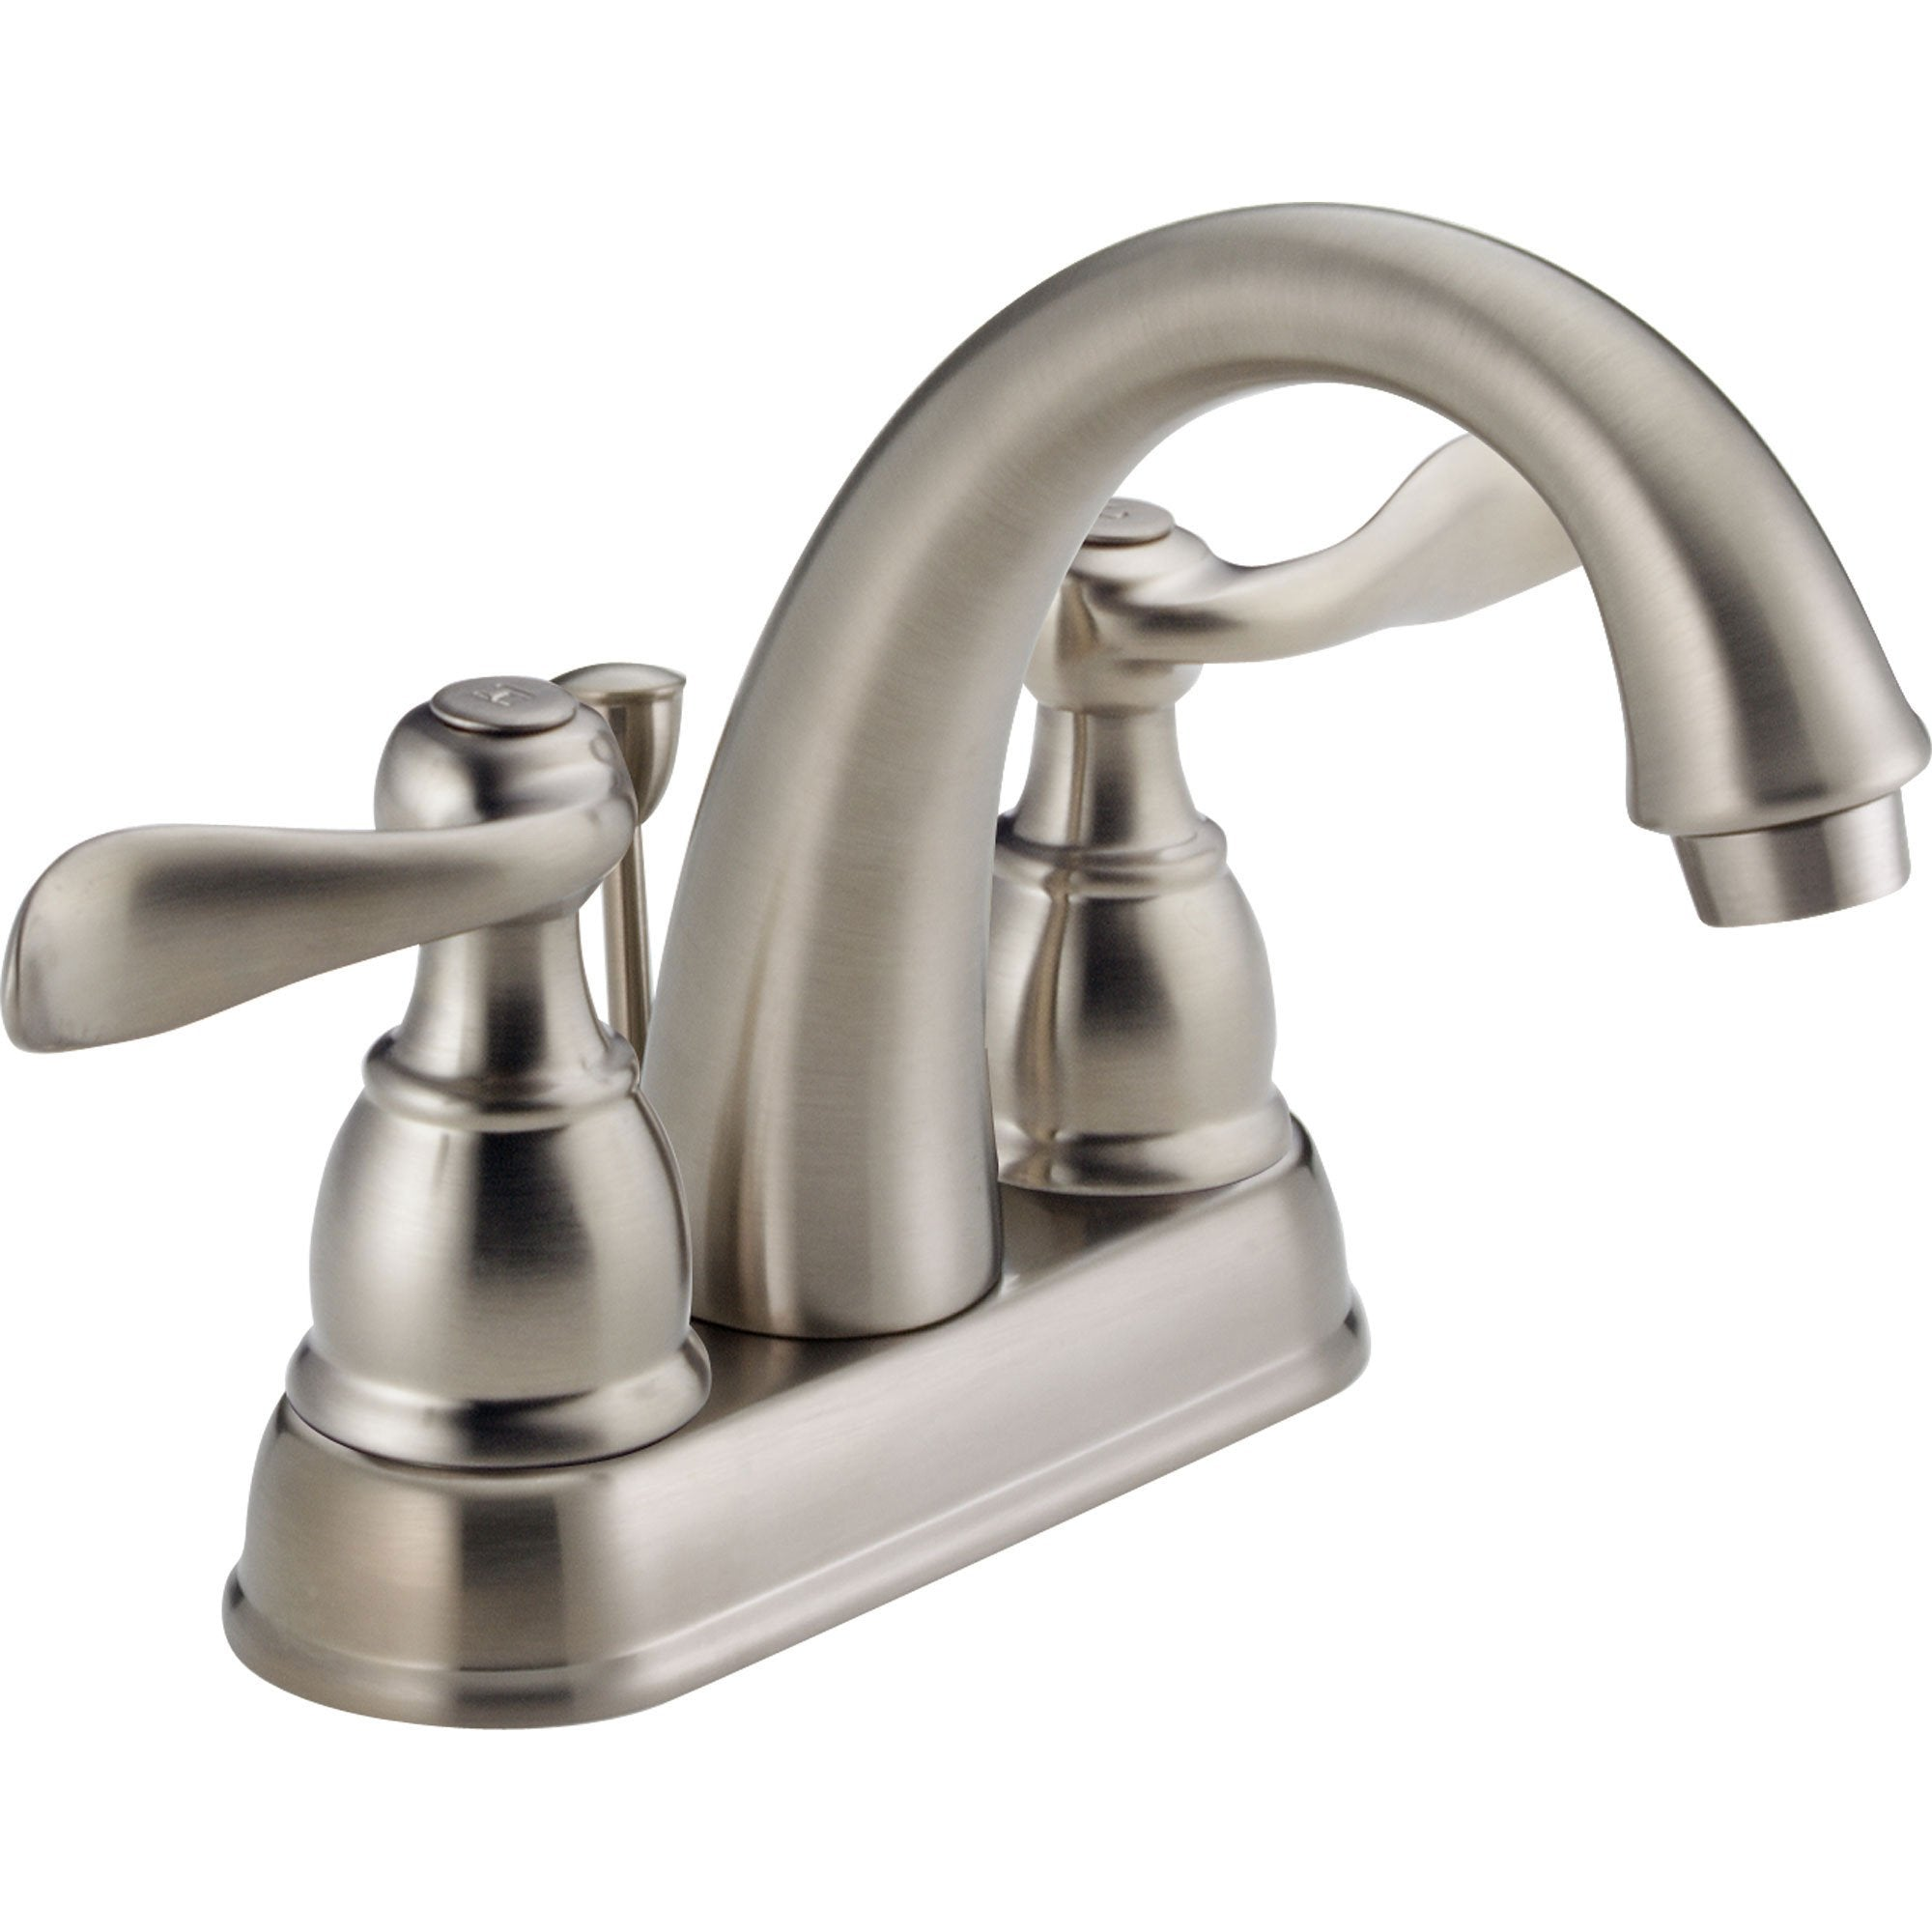 "Delta Windemere Stainless Steel Finish 4"" Centerset Bathroom Faucet 522519"